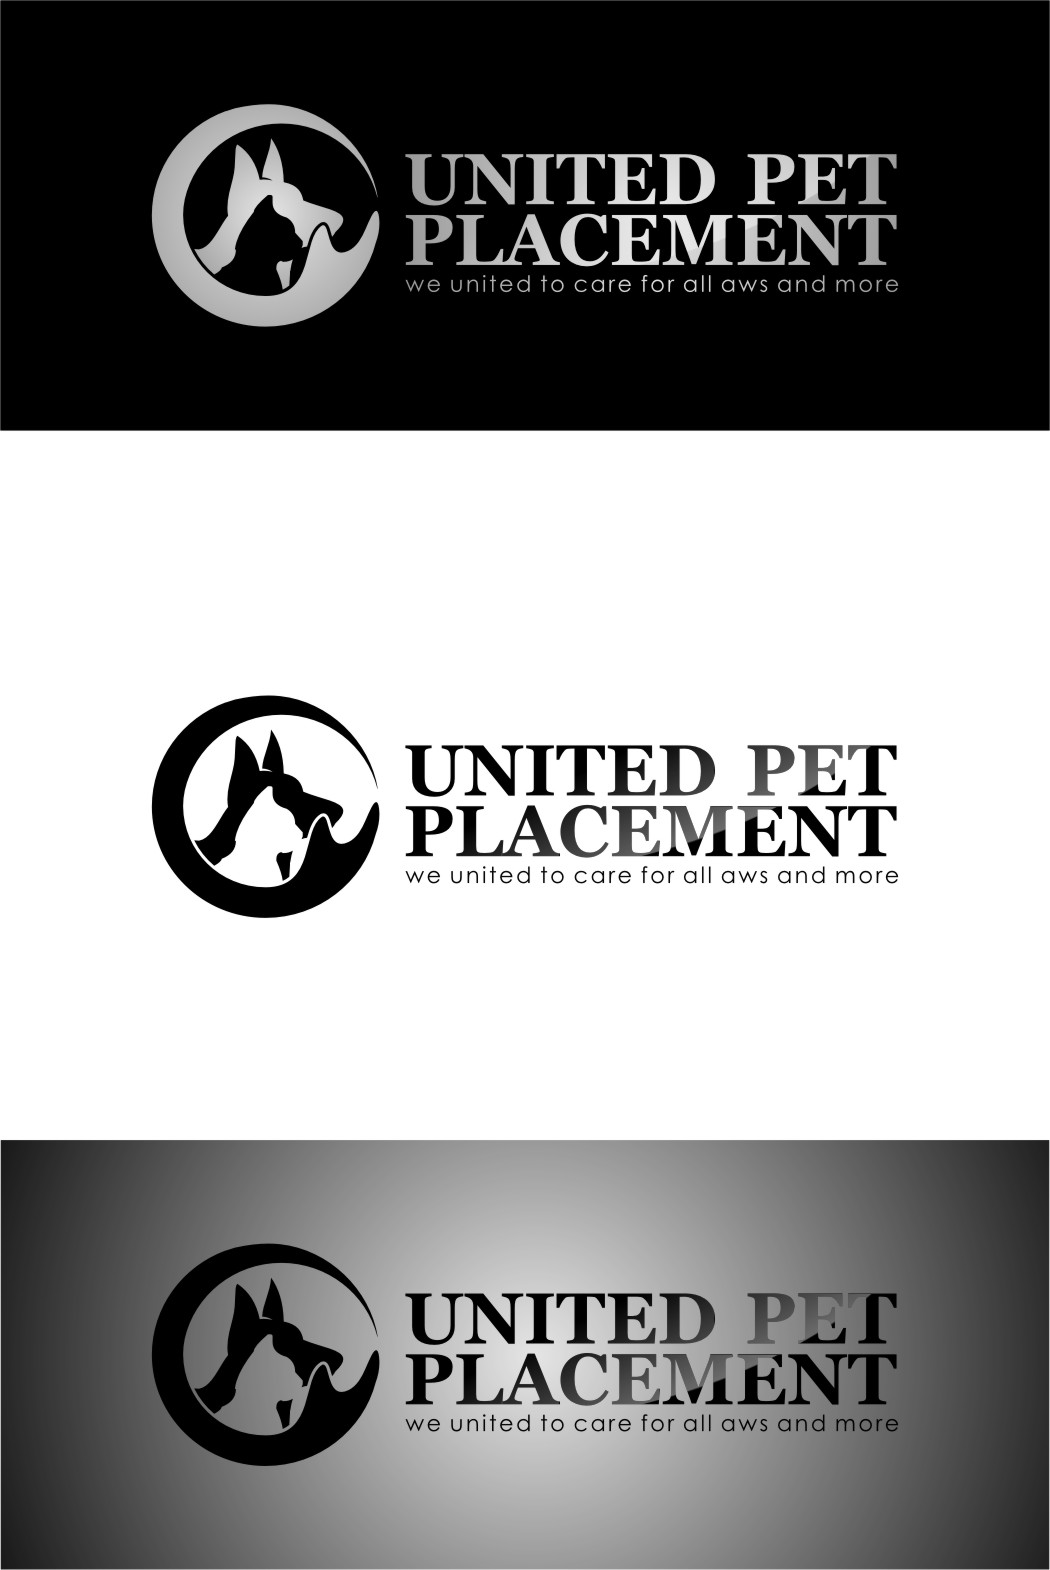 Logo Design by Ngepet_art - Entry No. 27 in the Logo Design Contest Artistic Logo Design for united pet placement.